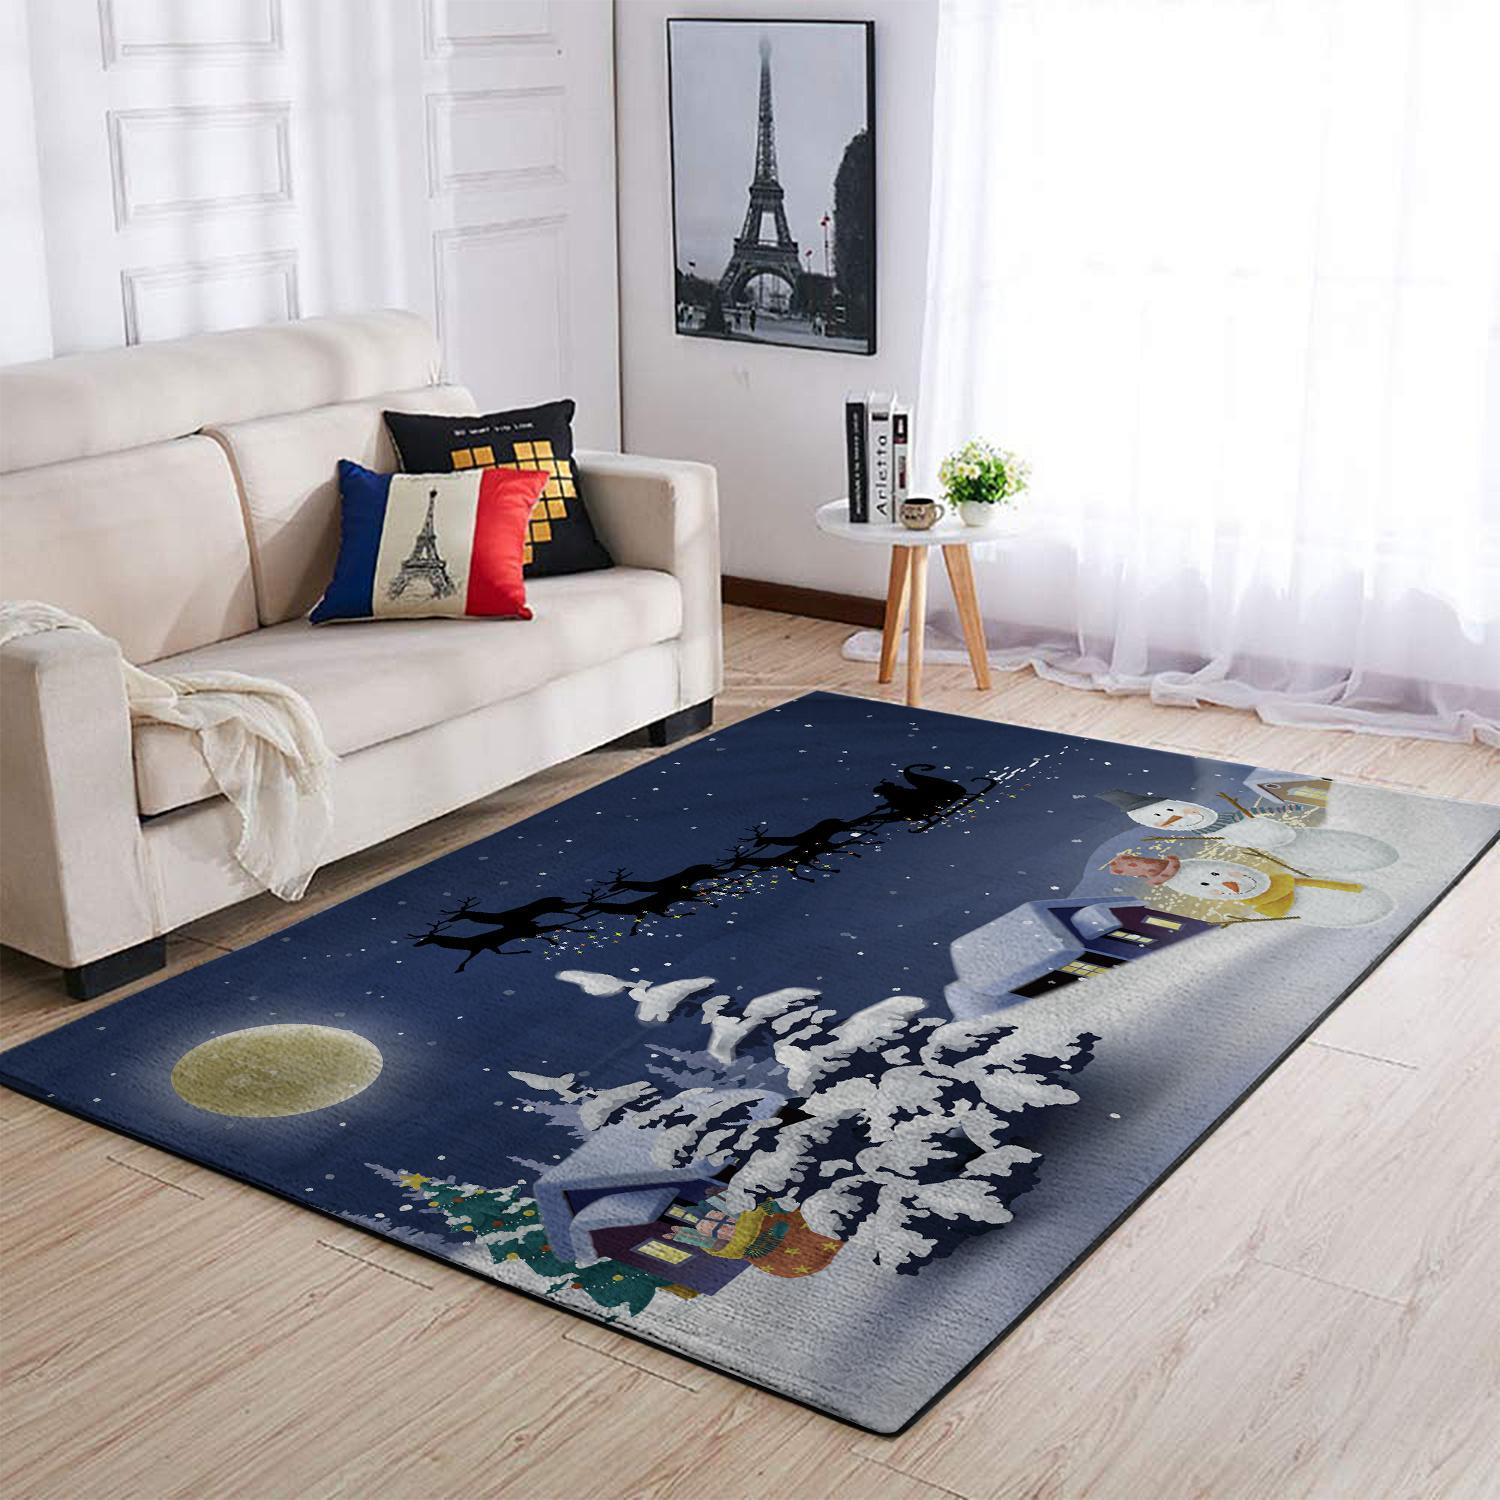 CHRISTMAS RUG CHRISTMAS NIGHT TWO SNOWMANS AREA RUG FULL SIZE